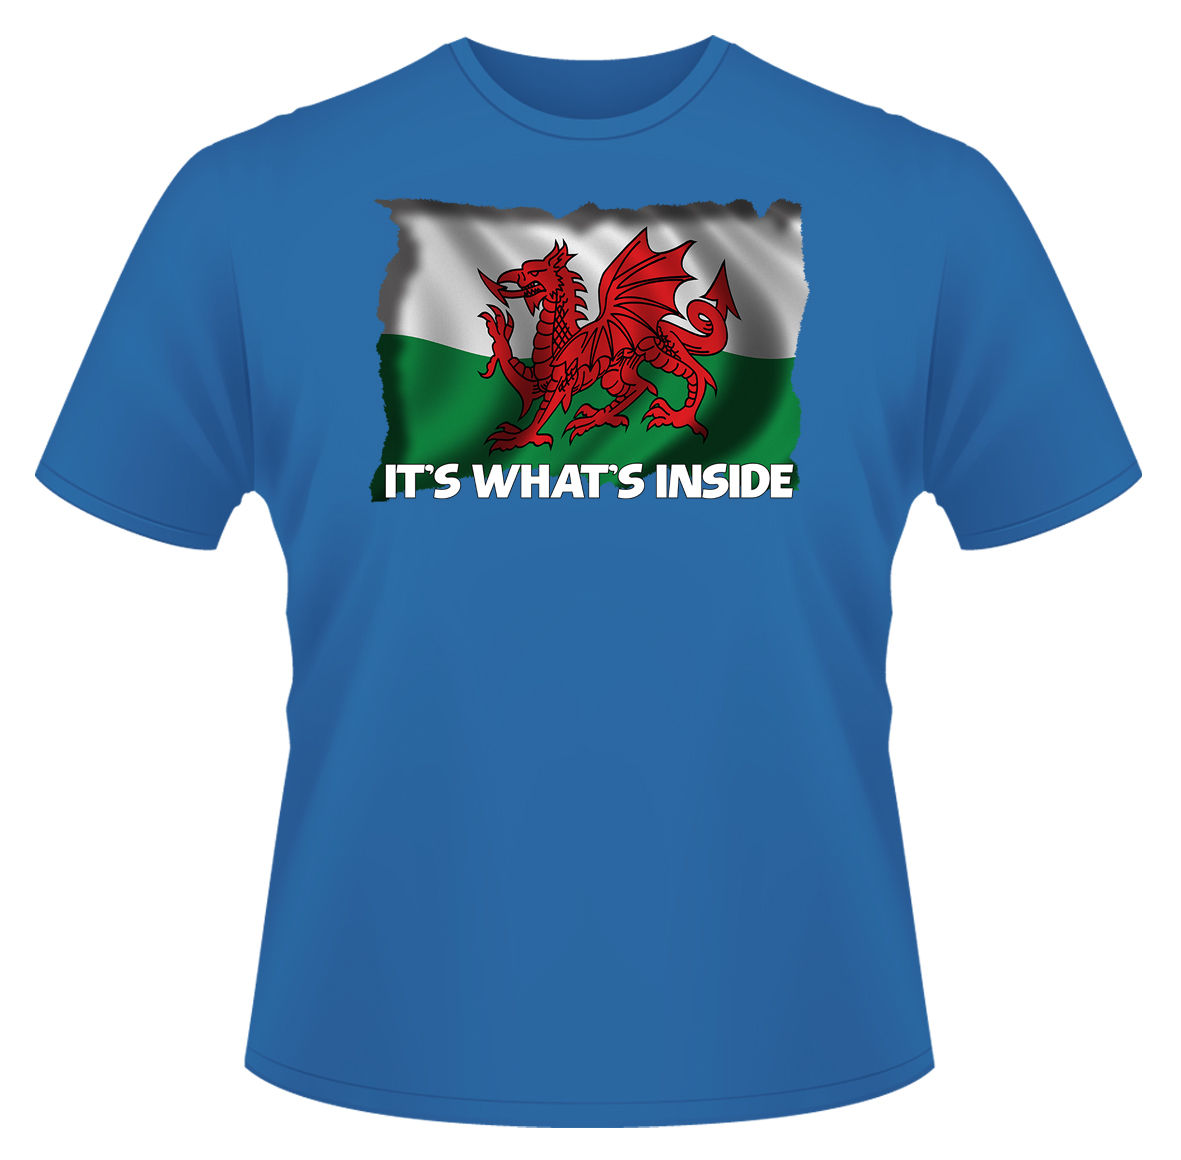 Mens T Shirt Its Whats Inside Wales Ideal Gift or Birthday Present New T Shirts Funny Tops Tee New Unisex Funny Tops in T Shirts from Men 39 s Clothing